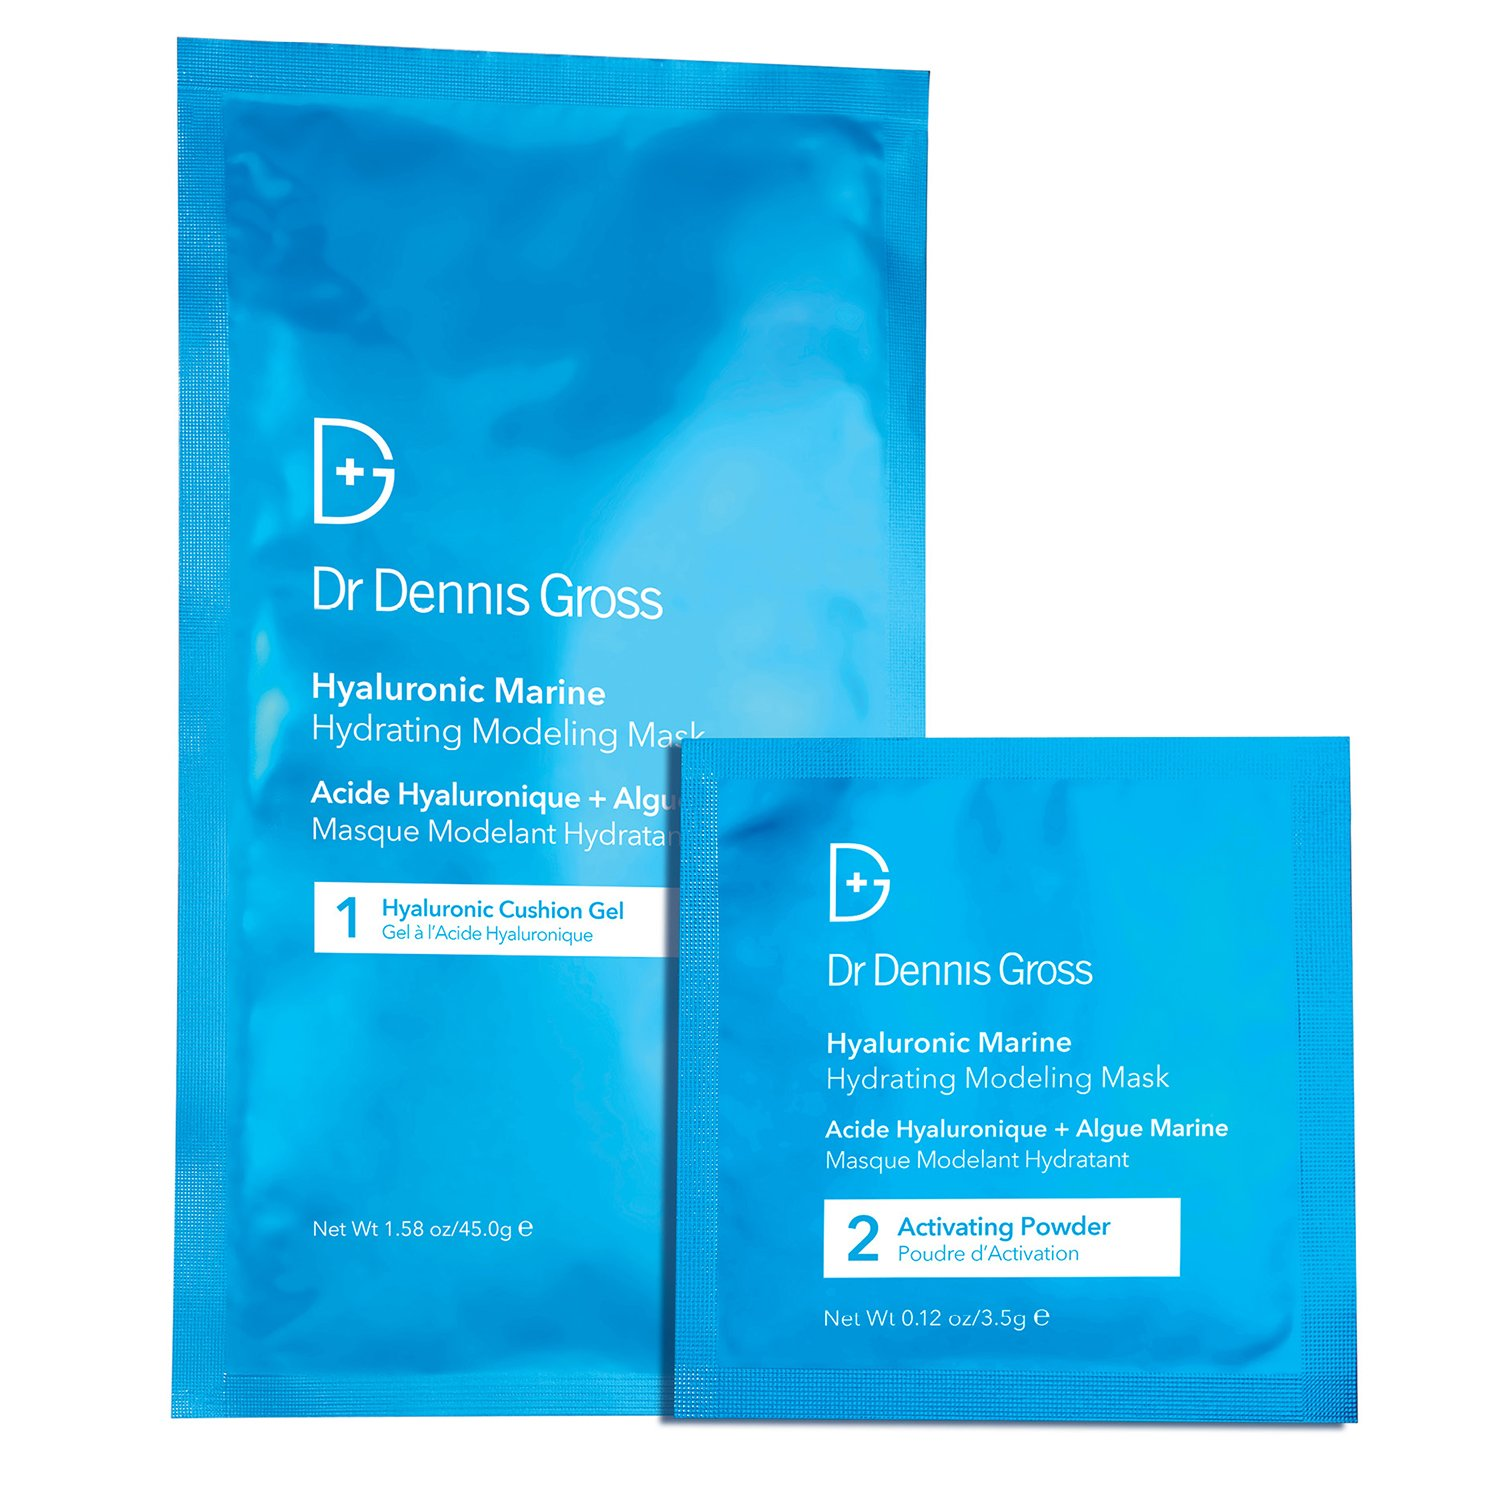 Dr Dennis Gross Hyaluronic Marine Hydrating Modeling Mask 4 Treatments